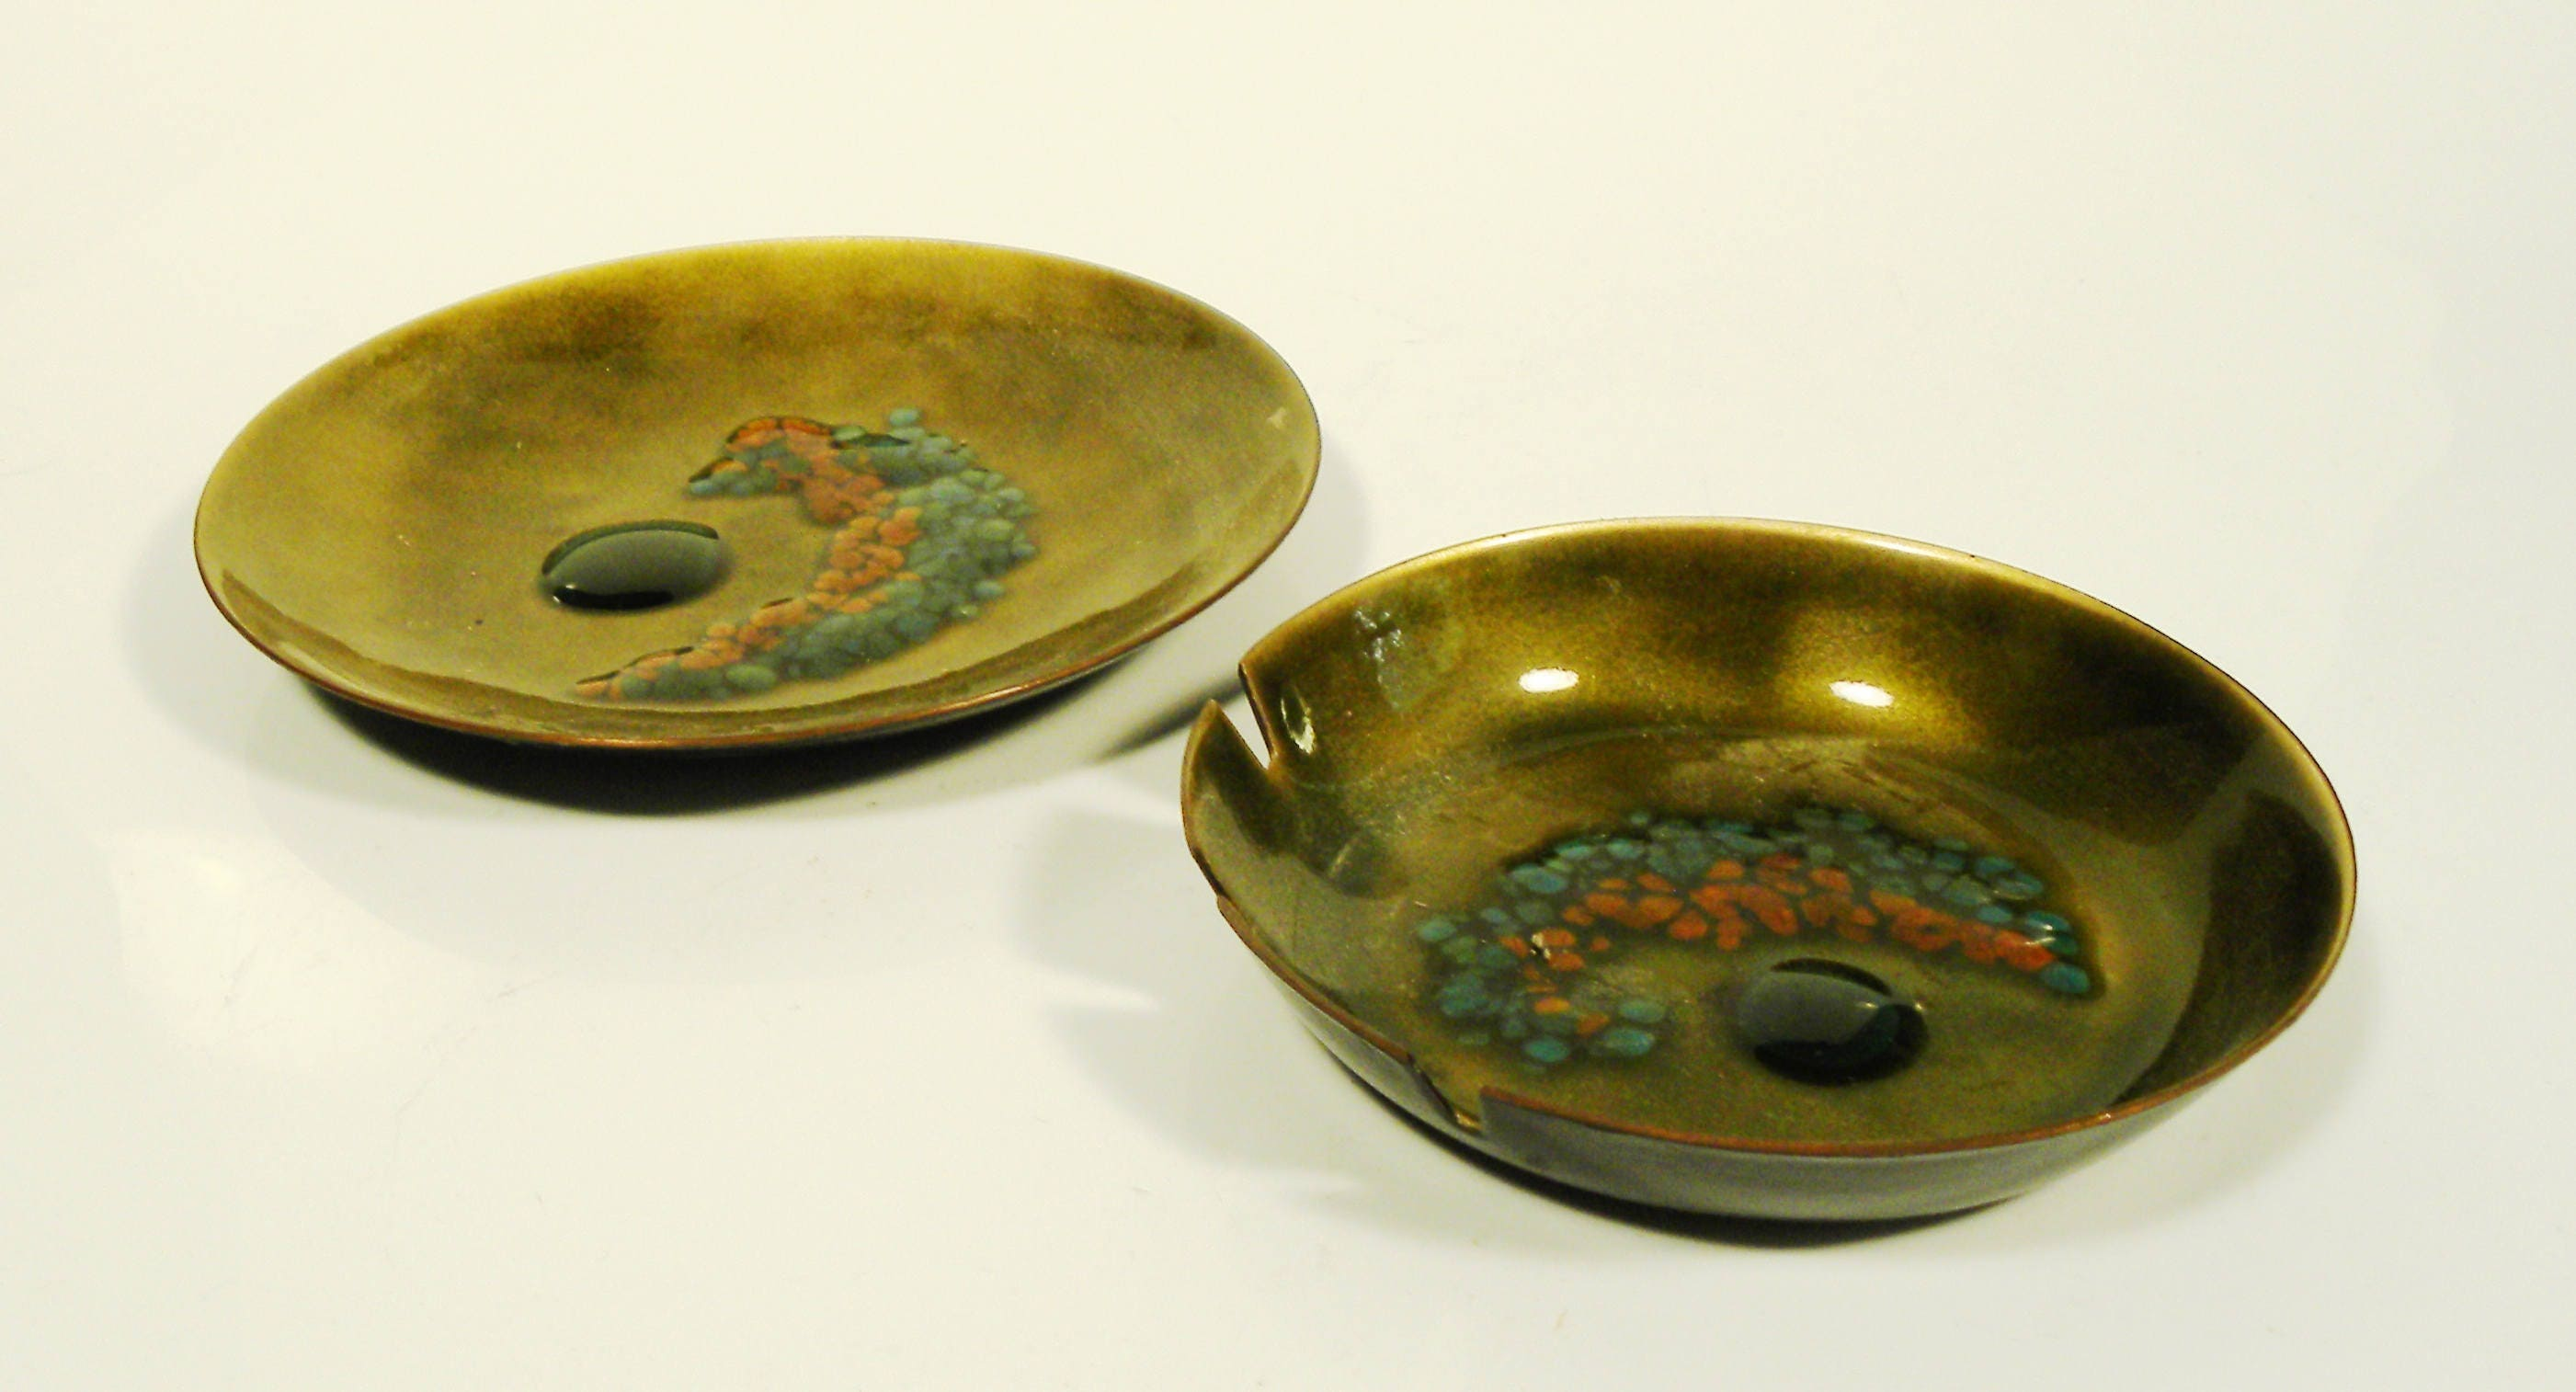 Vintage 1950s Handcrafted Bovano of Cheshire CT Enamel Small